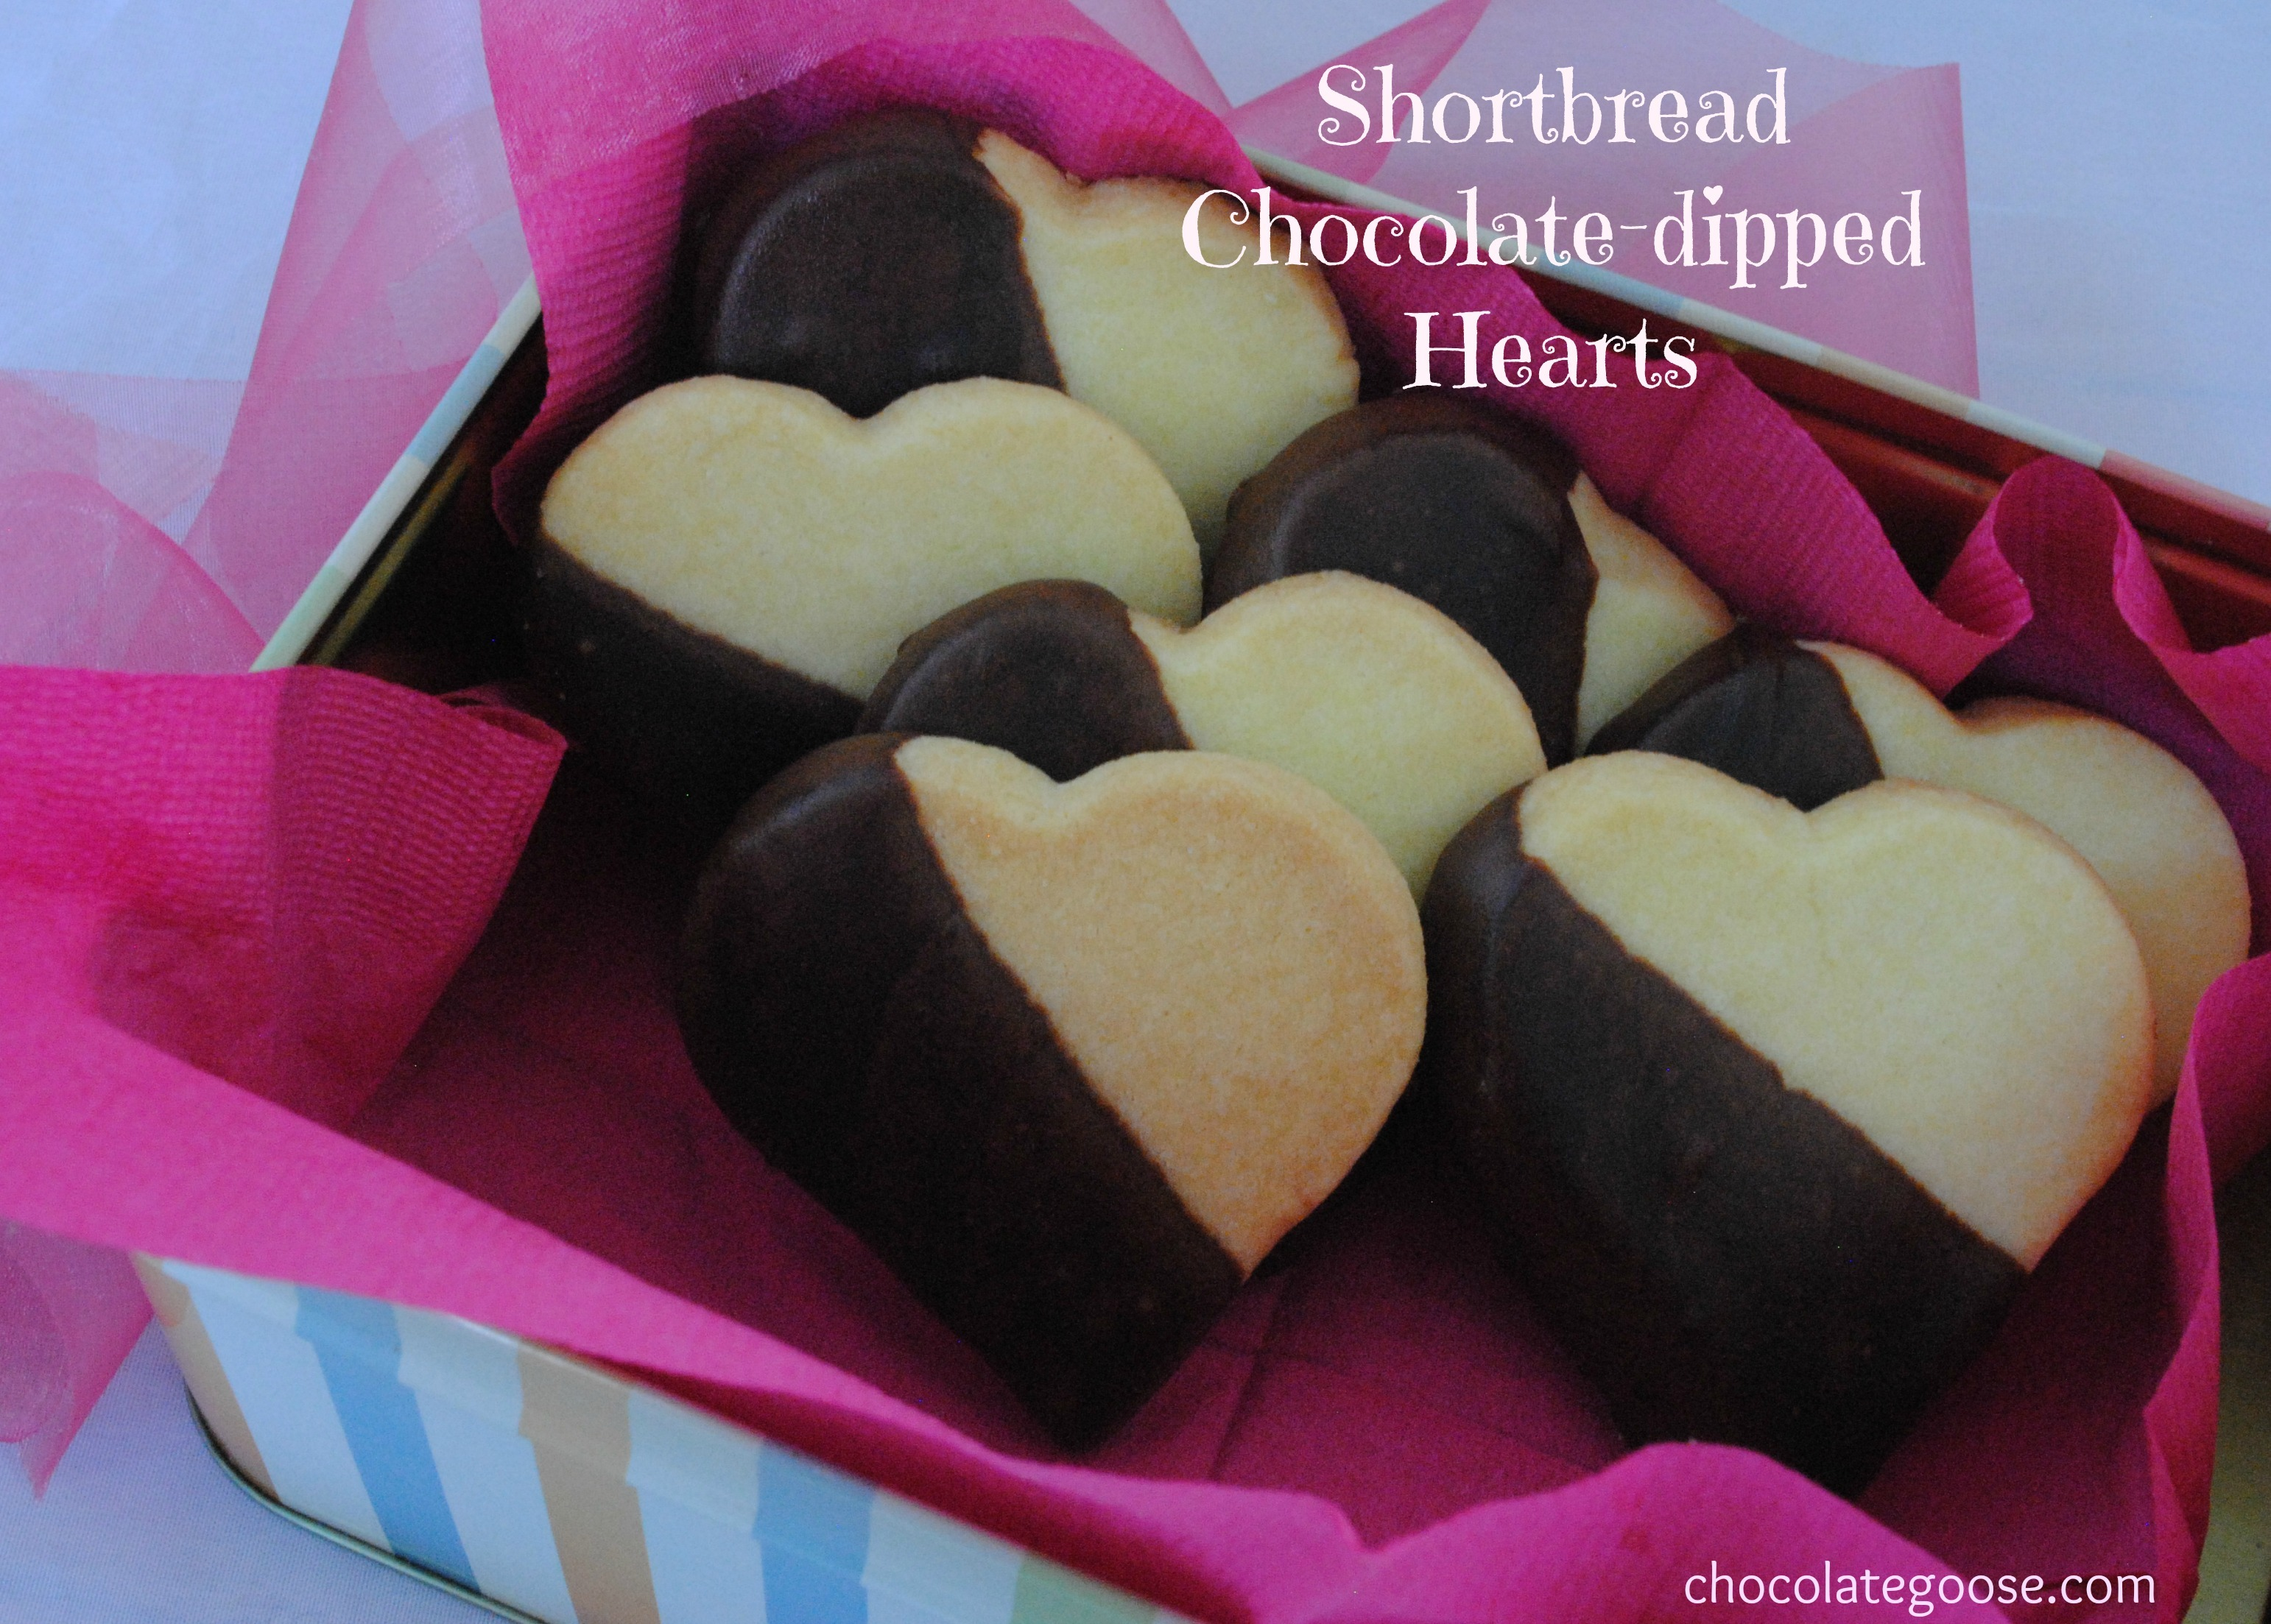 Valentine's Day Shortbread Chocolate-dipped Hearts